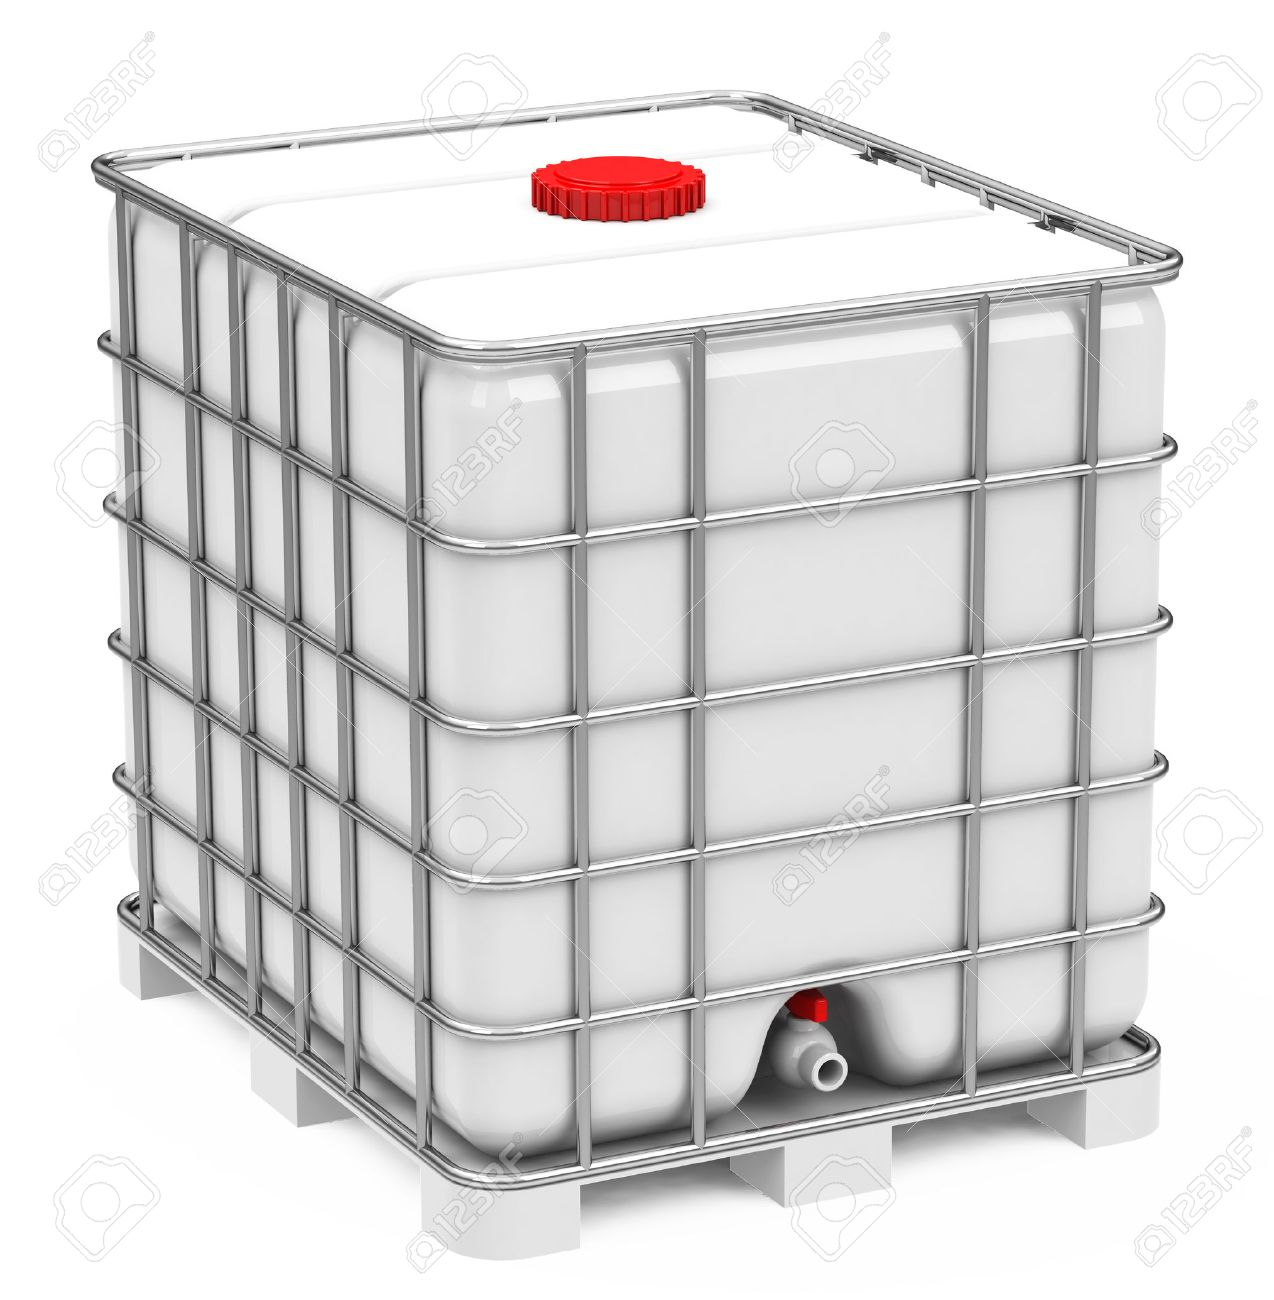 The Ibc Container Stock Photo Picture And Royalty Free Image Image